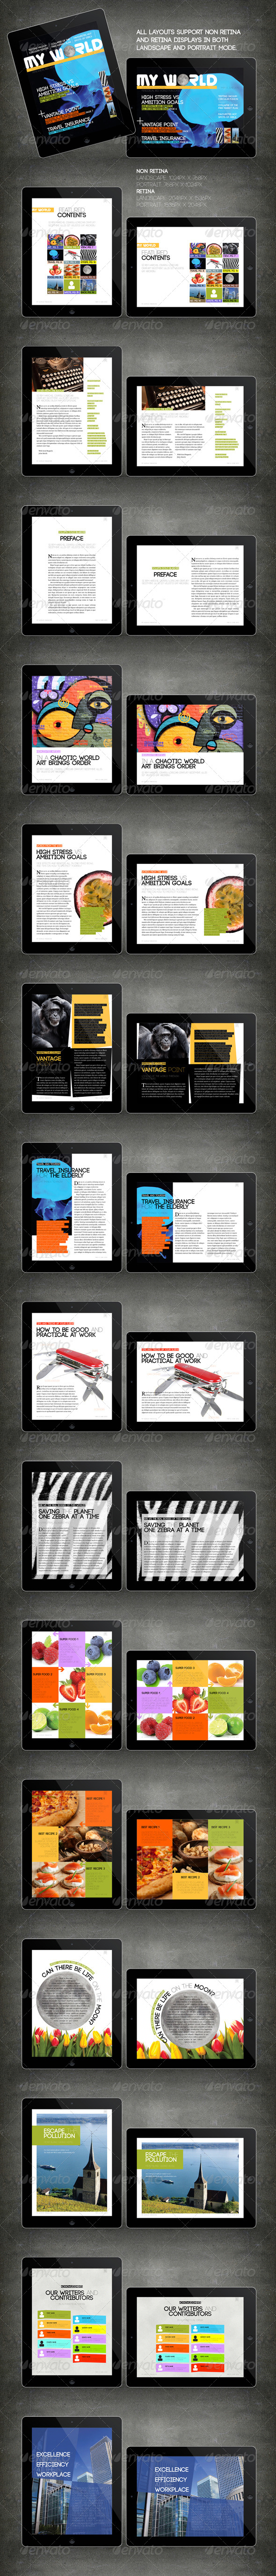 iPad Tablet Magazine Template 16 Pages - Digital Magazines ePublishing